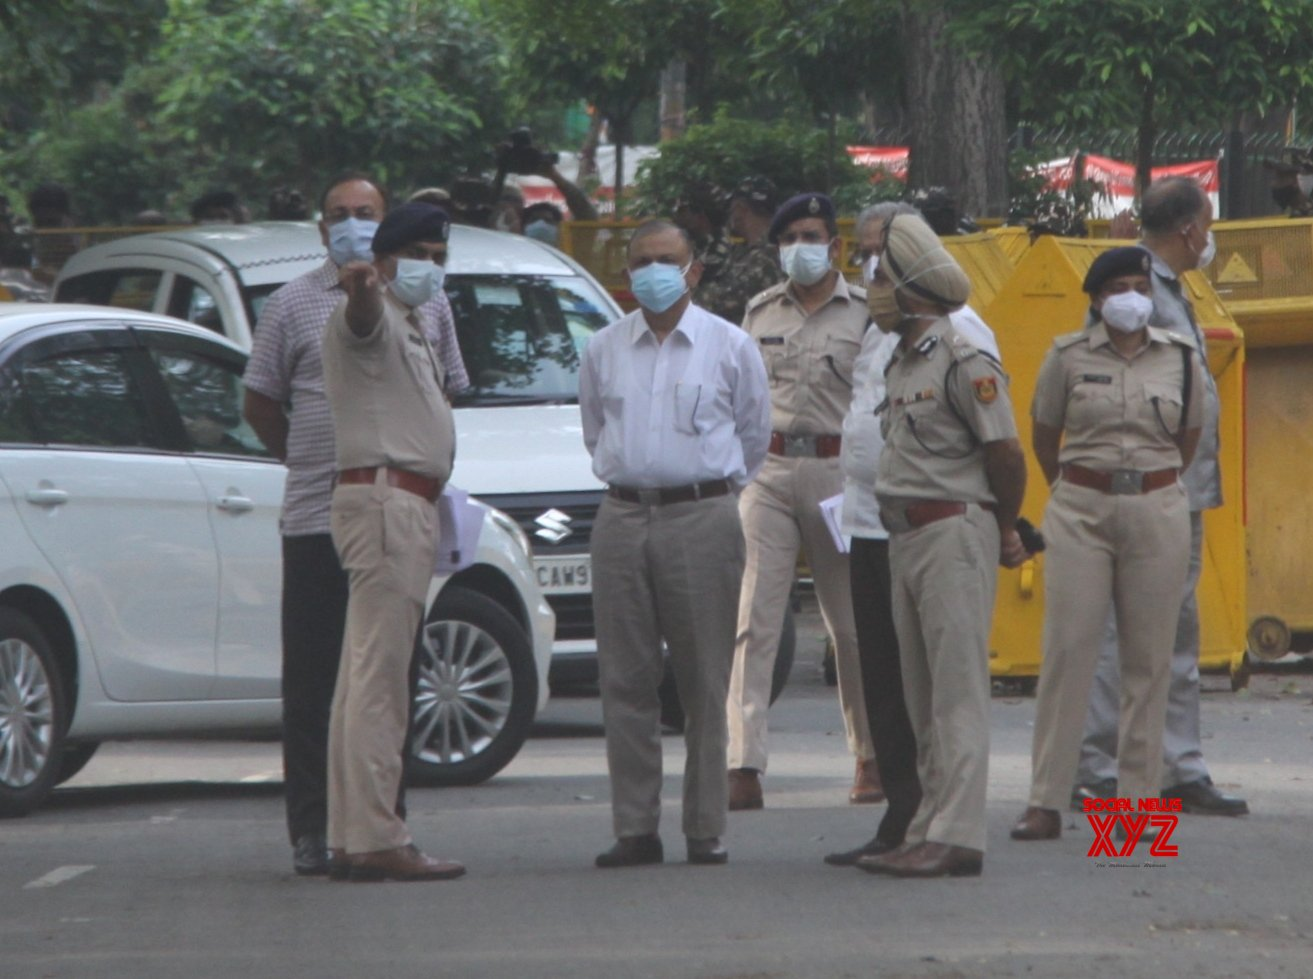 : Delhi Police Commissioner Bala Srivastava along with other senior officers inspecting the protest site of farmers at Jantar mantar in New Delhi on Wednesday. 21 July 2021 #Gallery